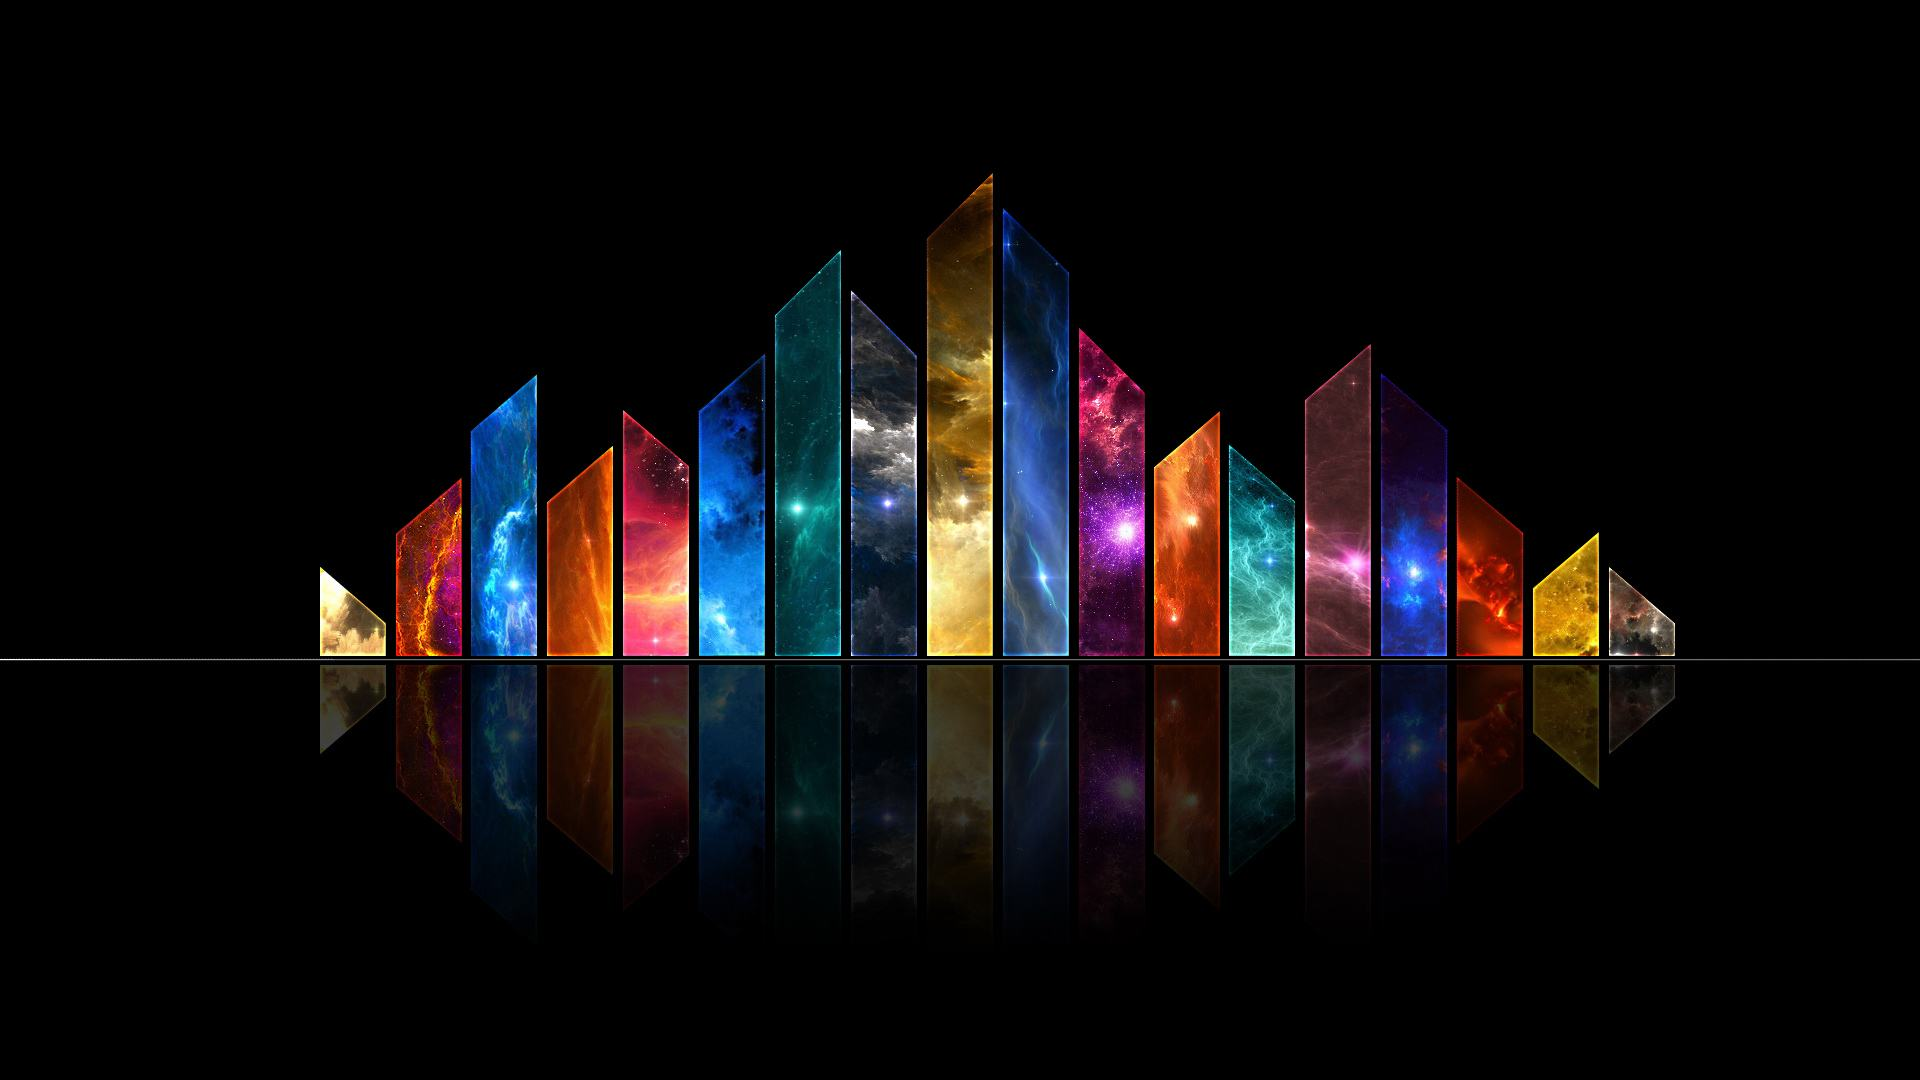 26] Kodi Background 1080p Wallpapers on WallpaperSafari 1920x1080